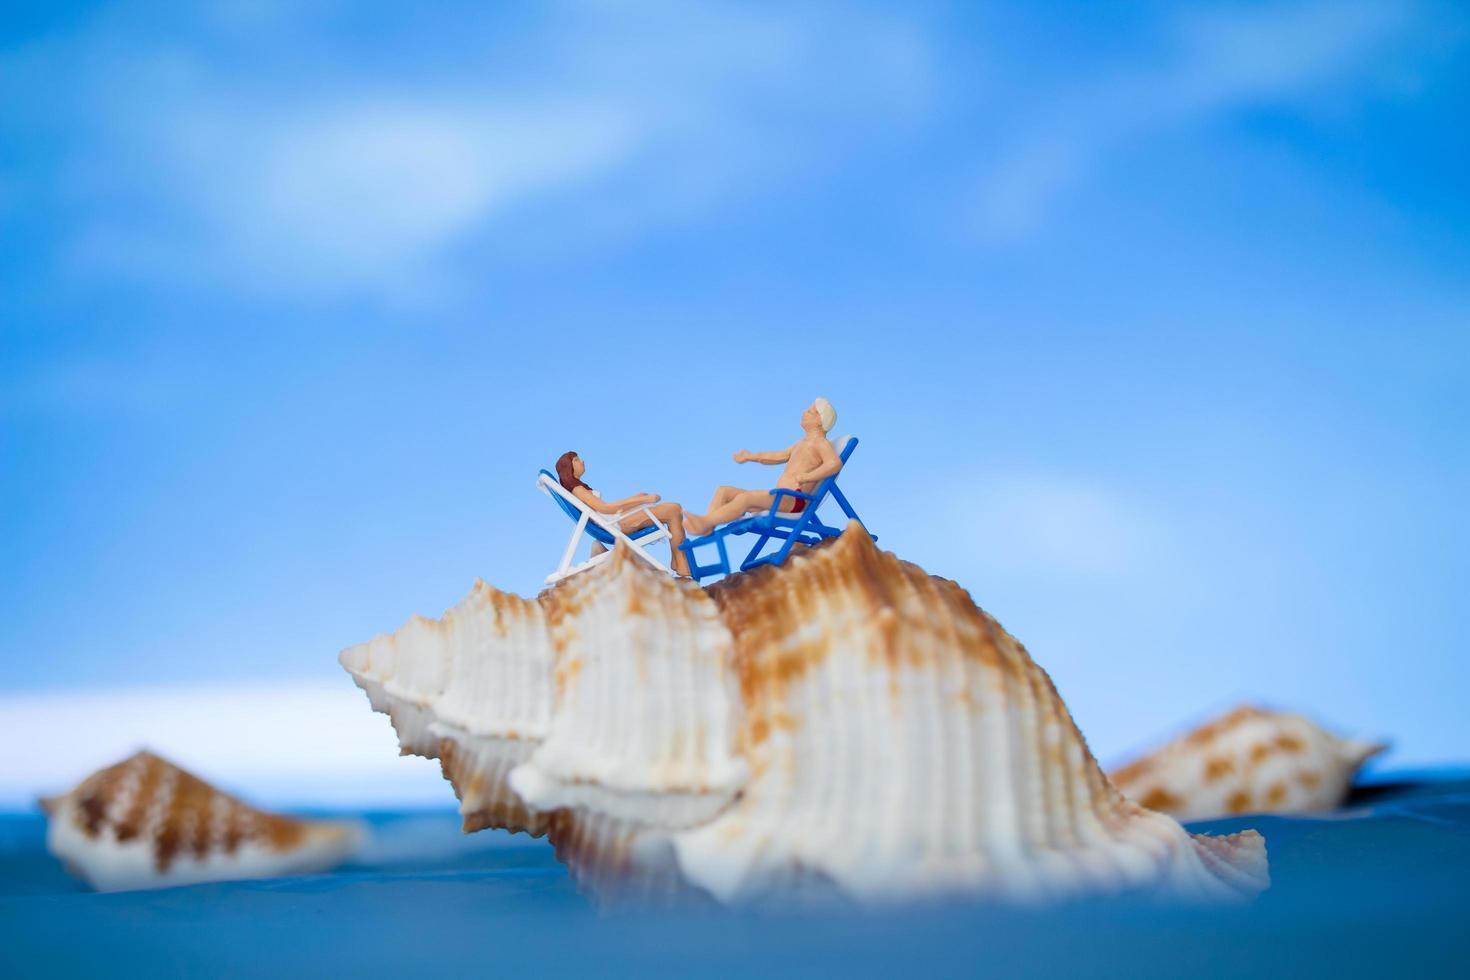 Miniature people sunbathing on a seashell with a blue sky background, summer vacation concept photo